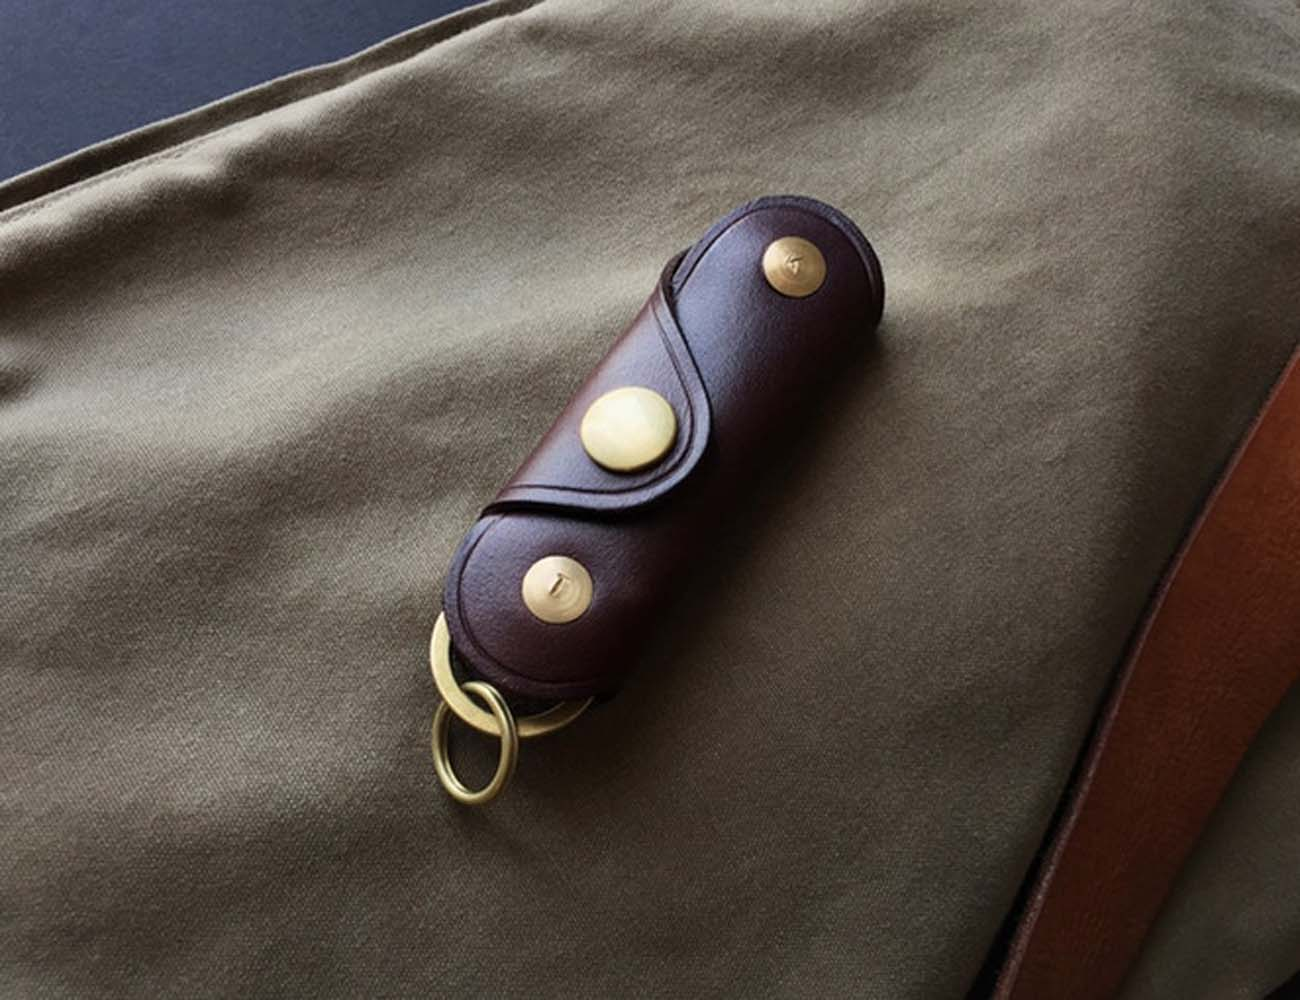 The Key Case – Quiet Keys, Beautiful and Functional Design